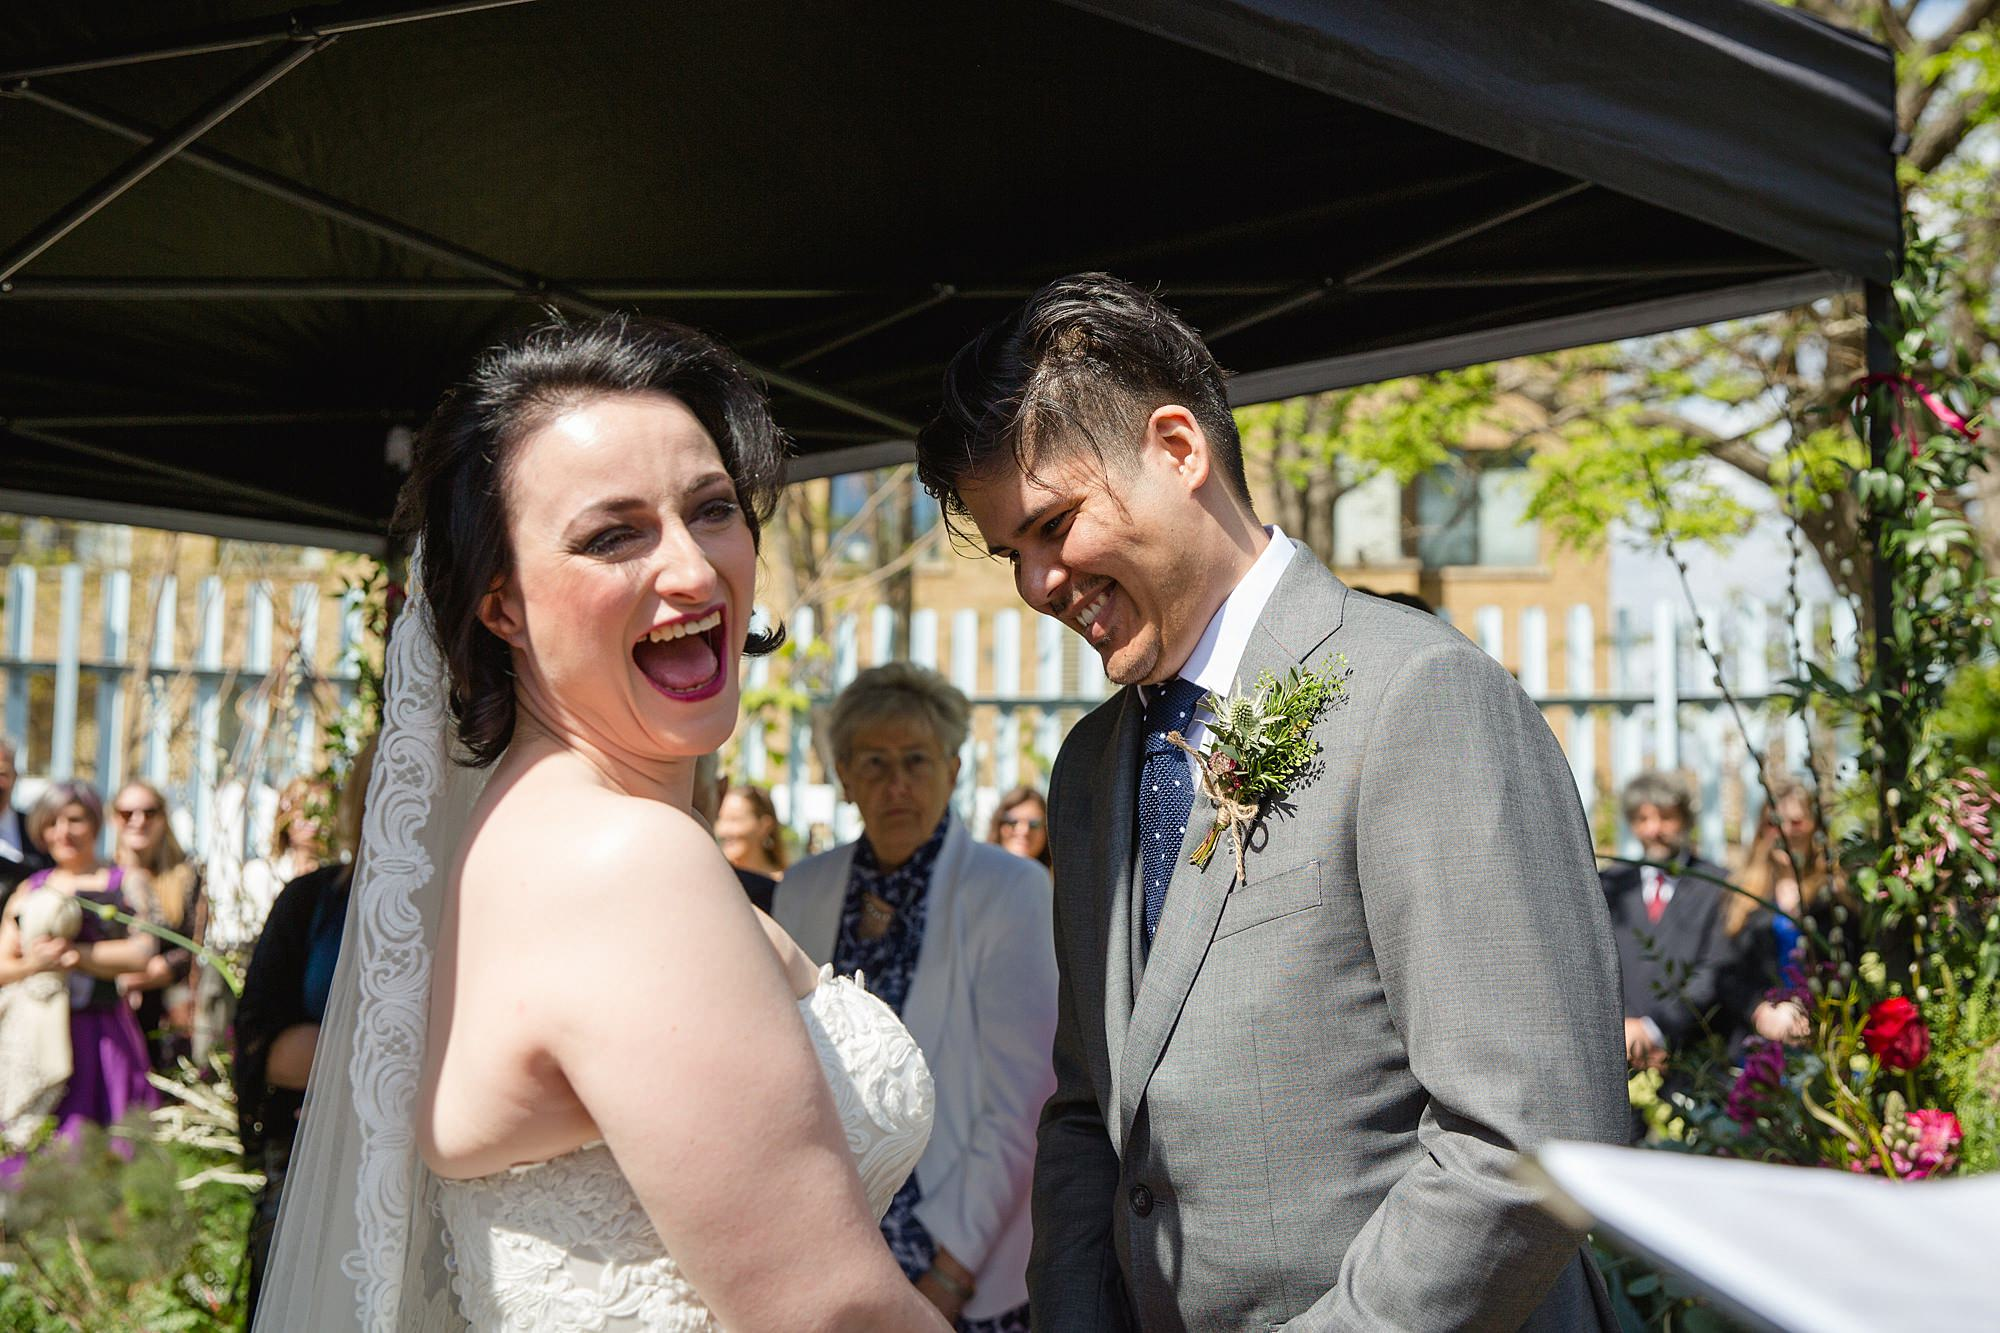 Brunel museum wedding bride and groom laugh during ceremony